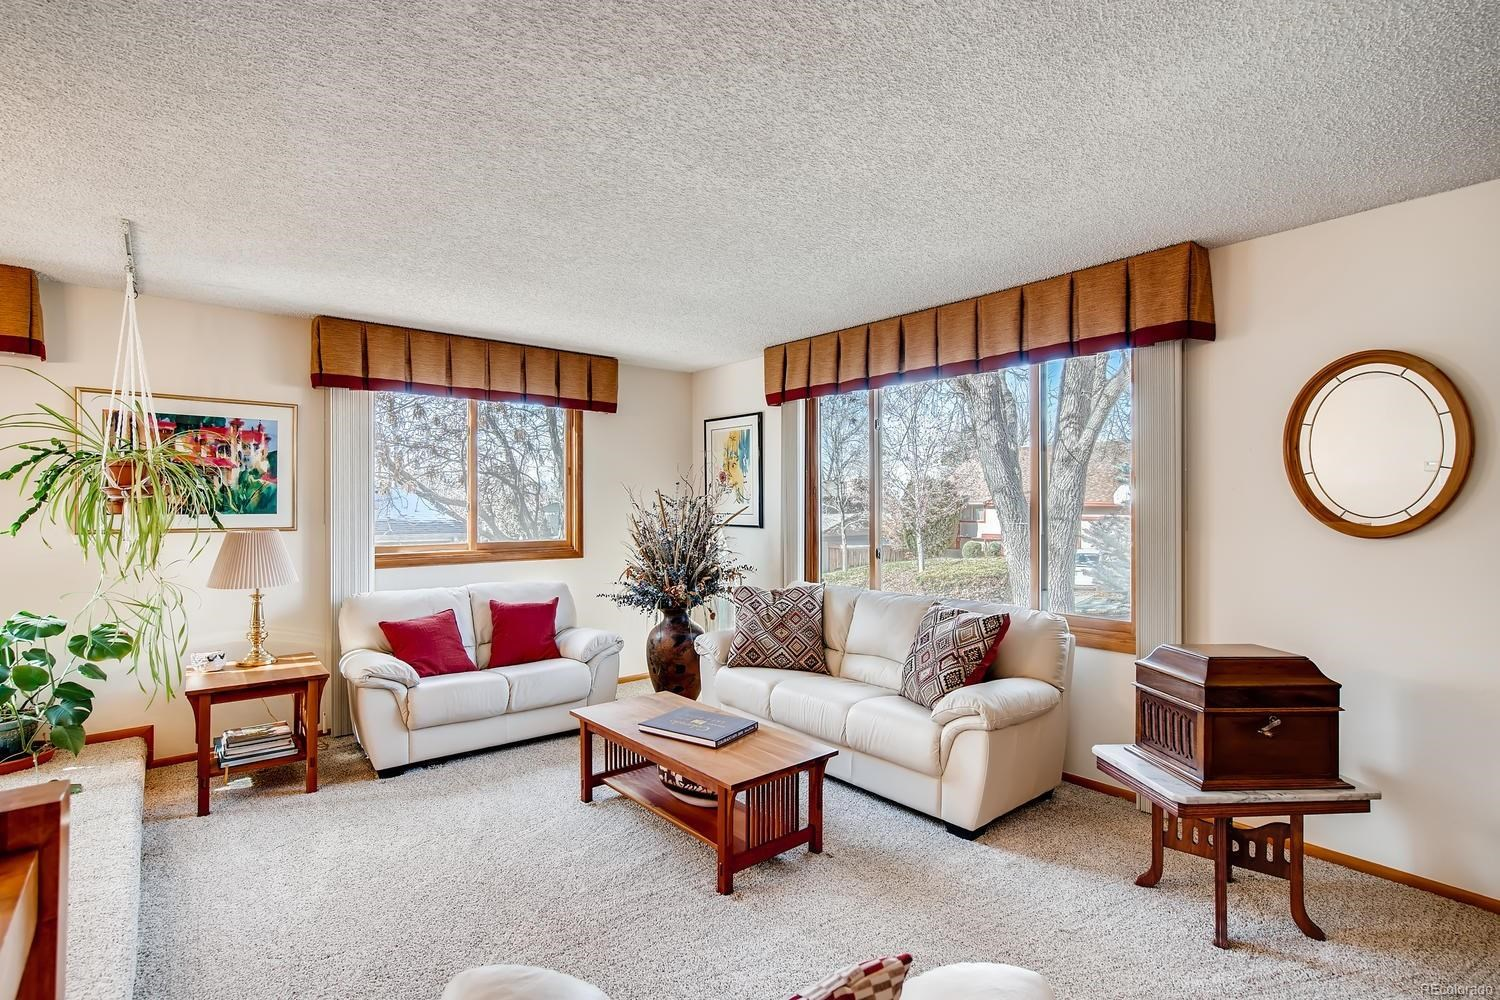 MLS# 2220629 - 3 - 4620 W 108th Place, Westminster, CO 80031